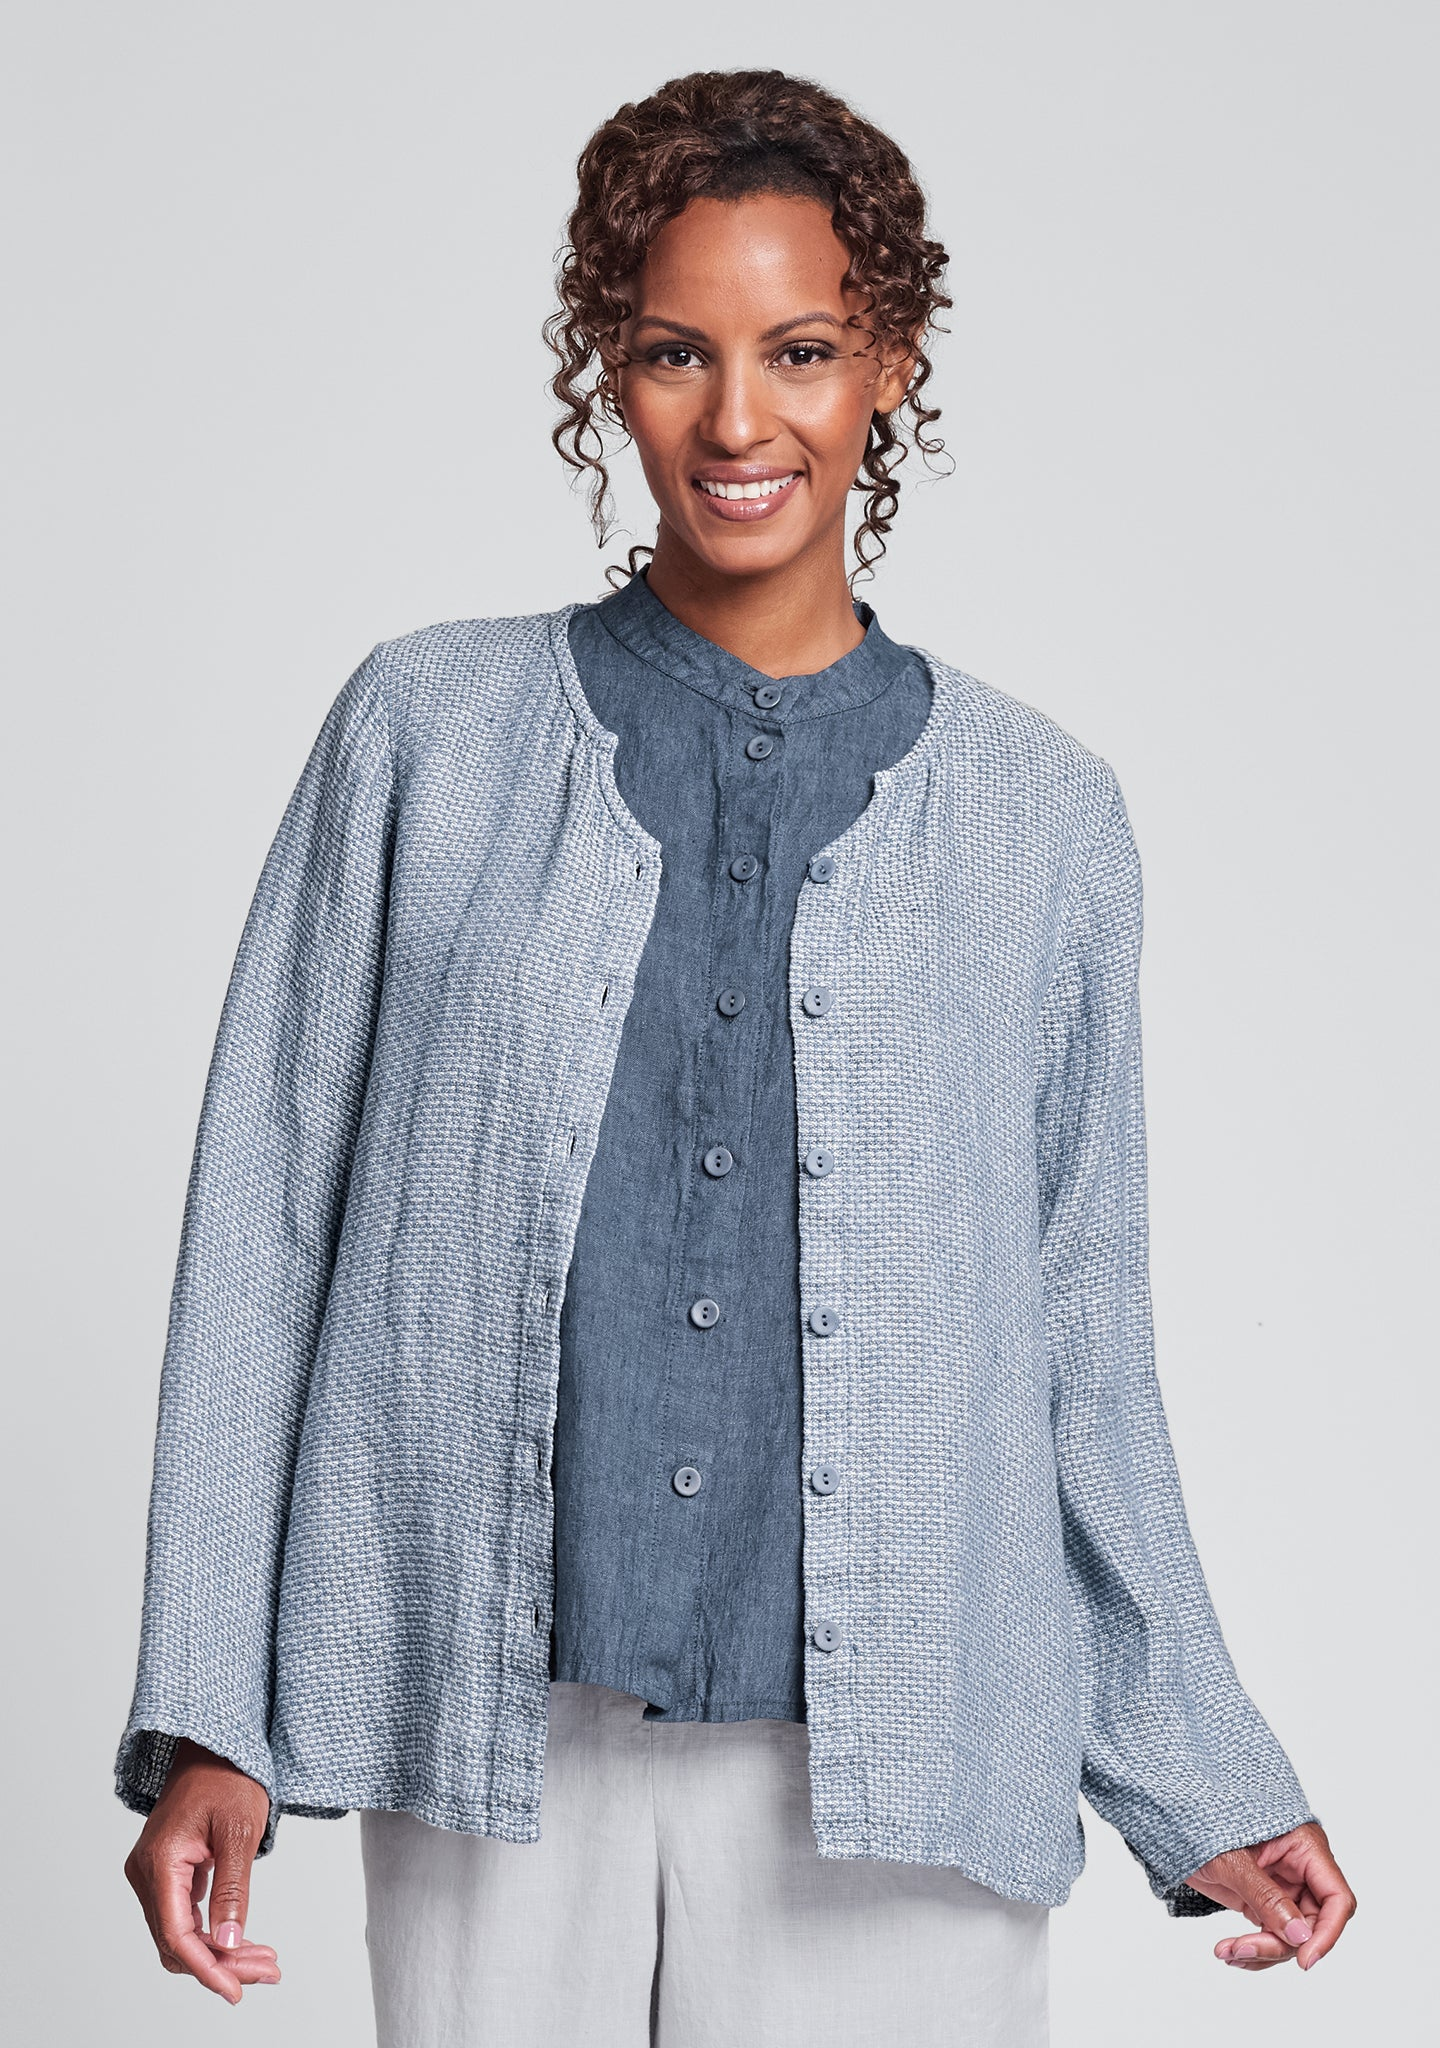 observation blouse linen button down shirt blue